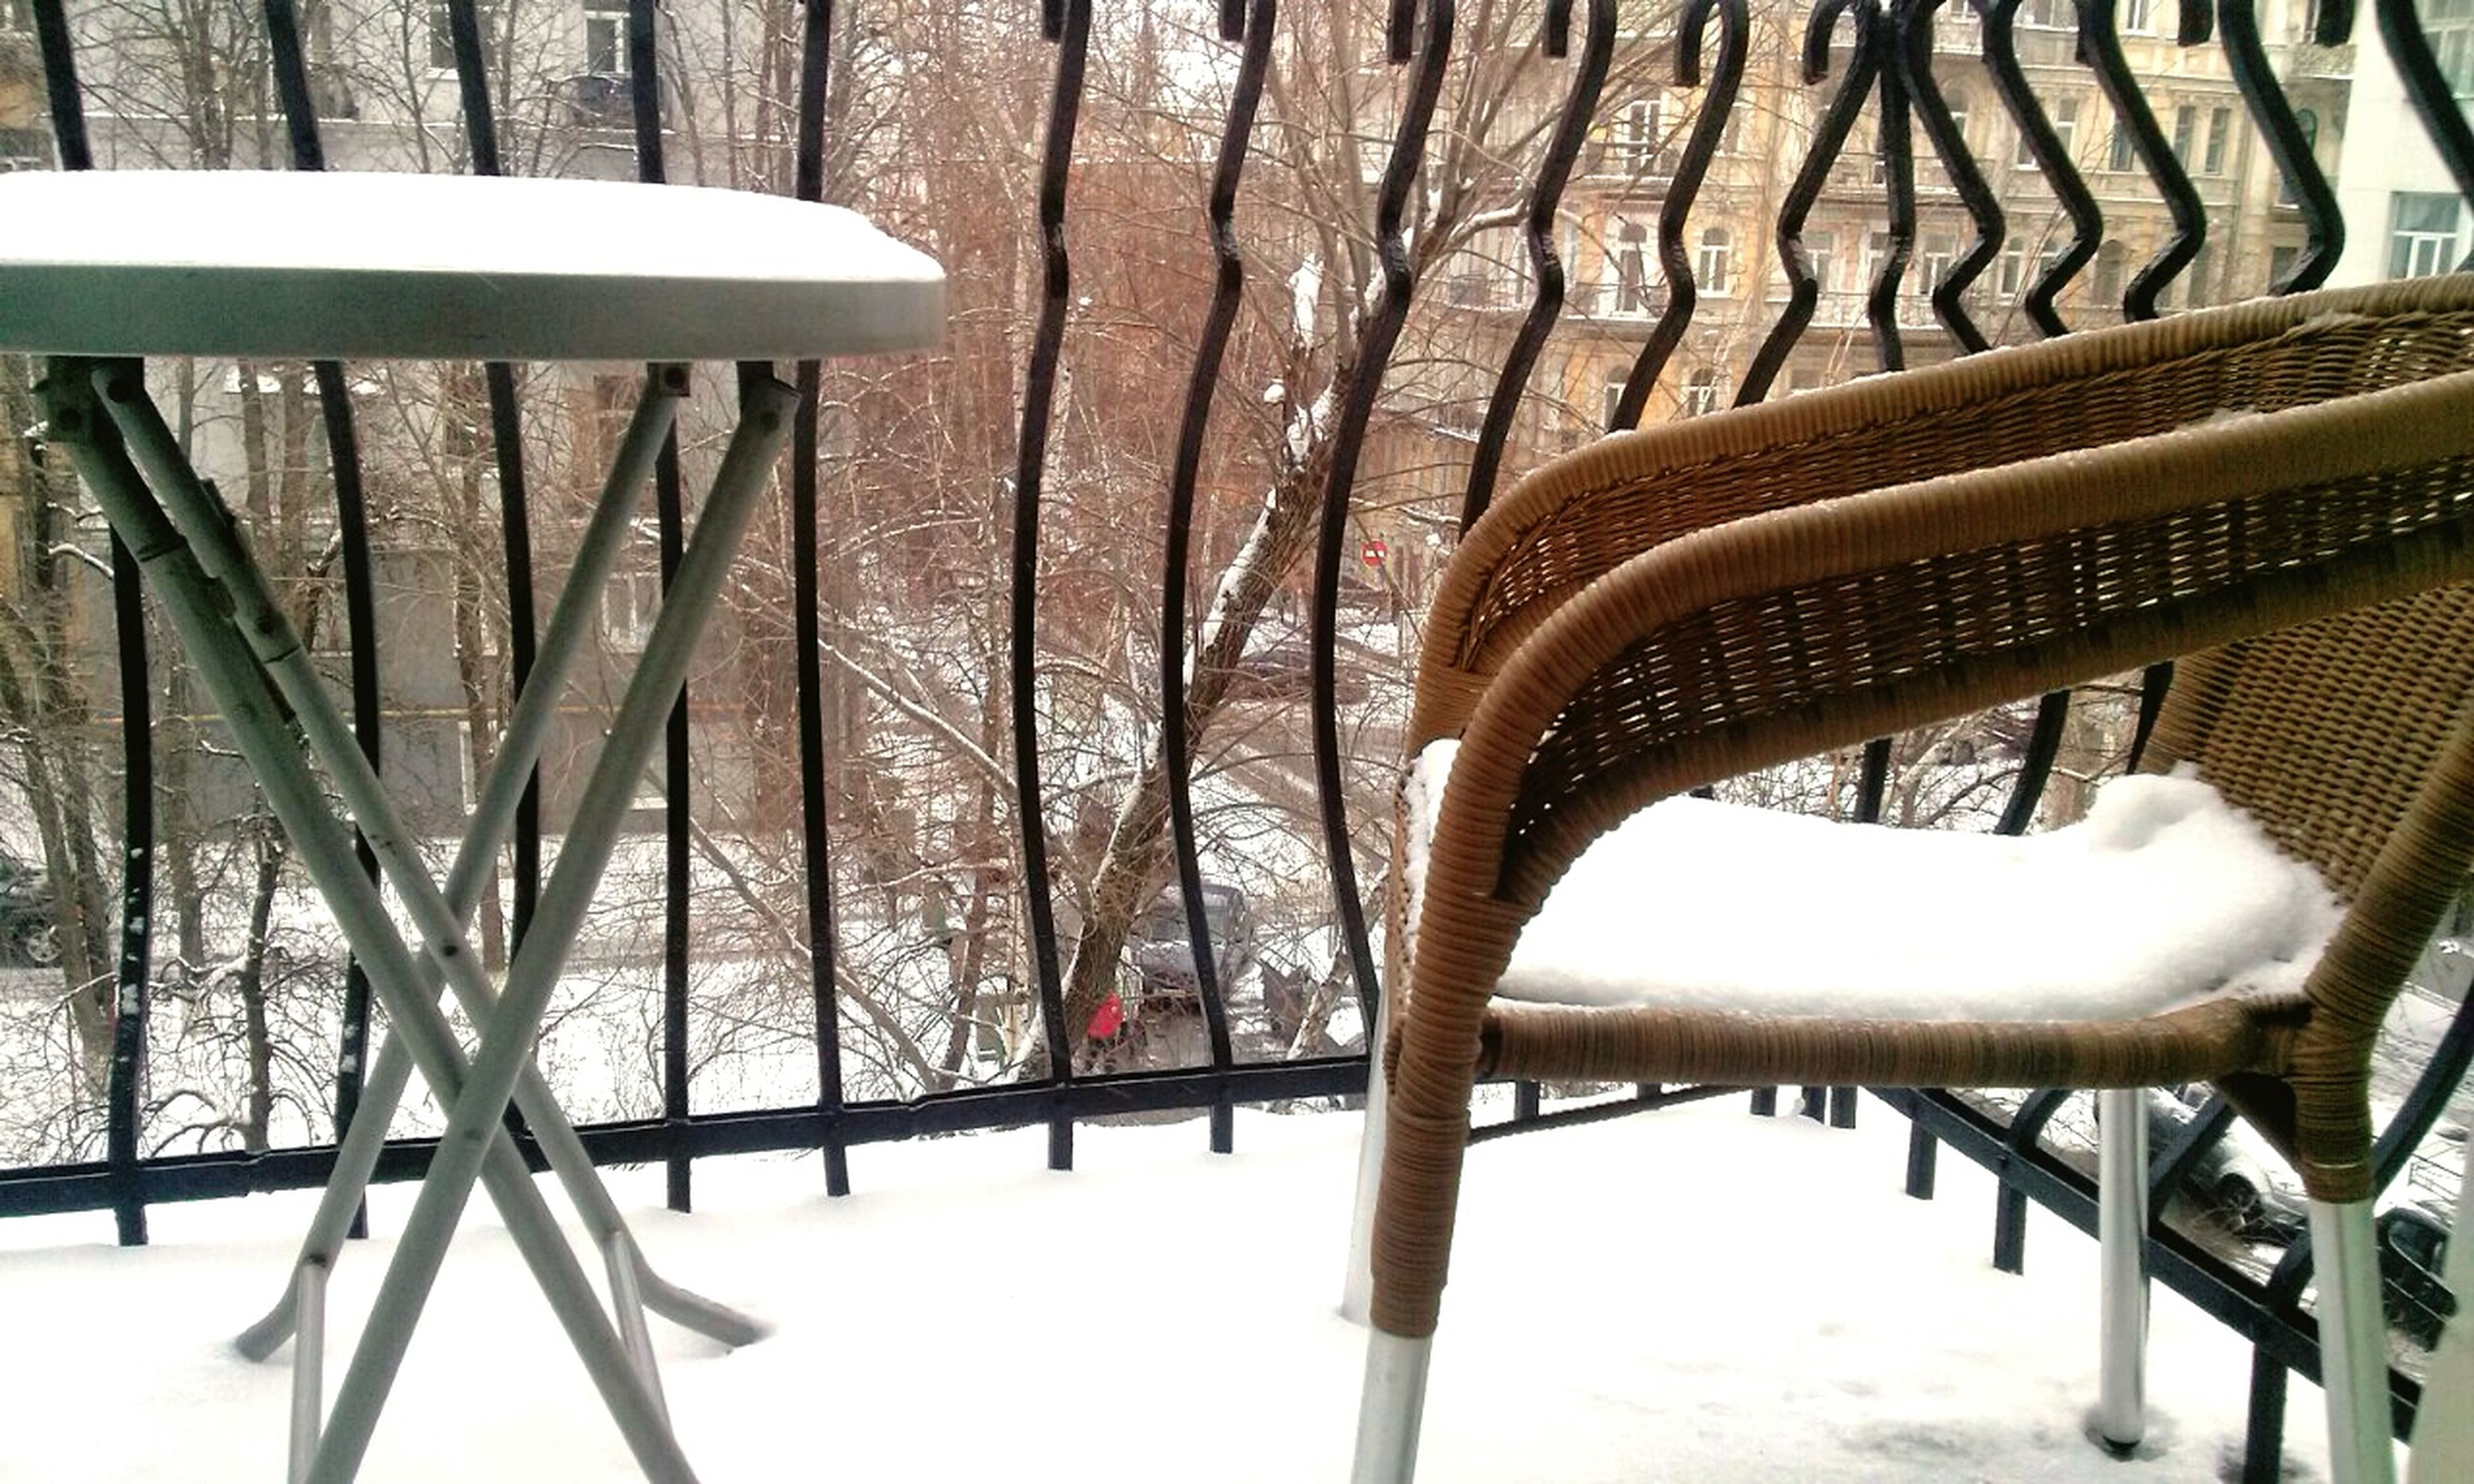 snow, winter, cold temperature, season, chair, tree, covering, weather, absence, nature, white color, tranquility, covered, empty, bench, wood - material, no people, field, day, outdoors